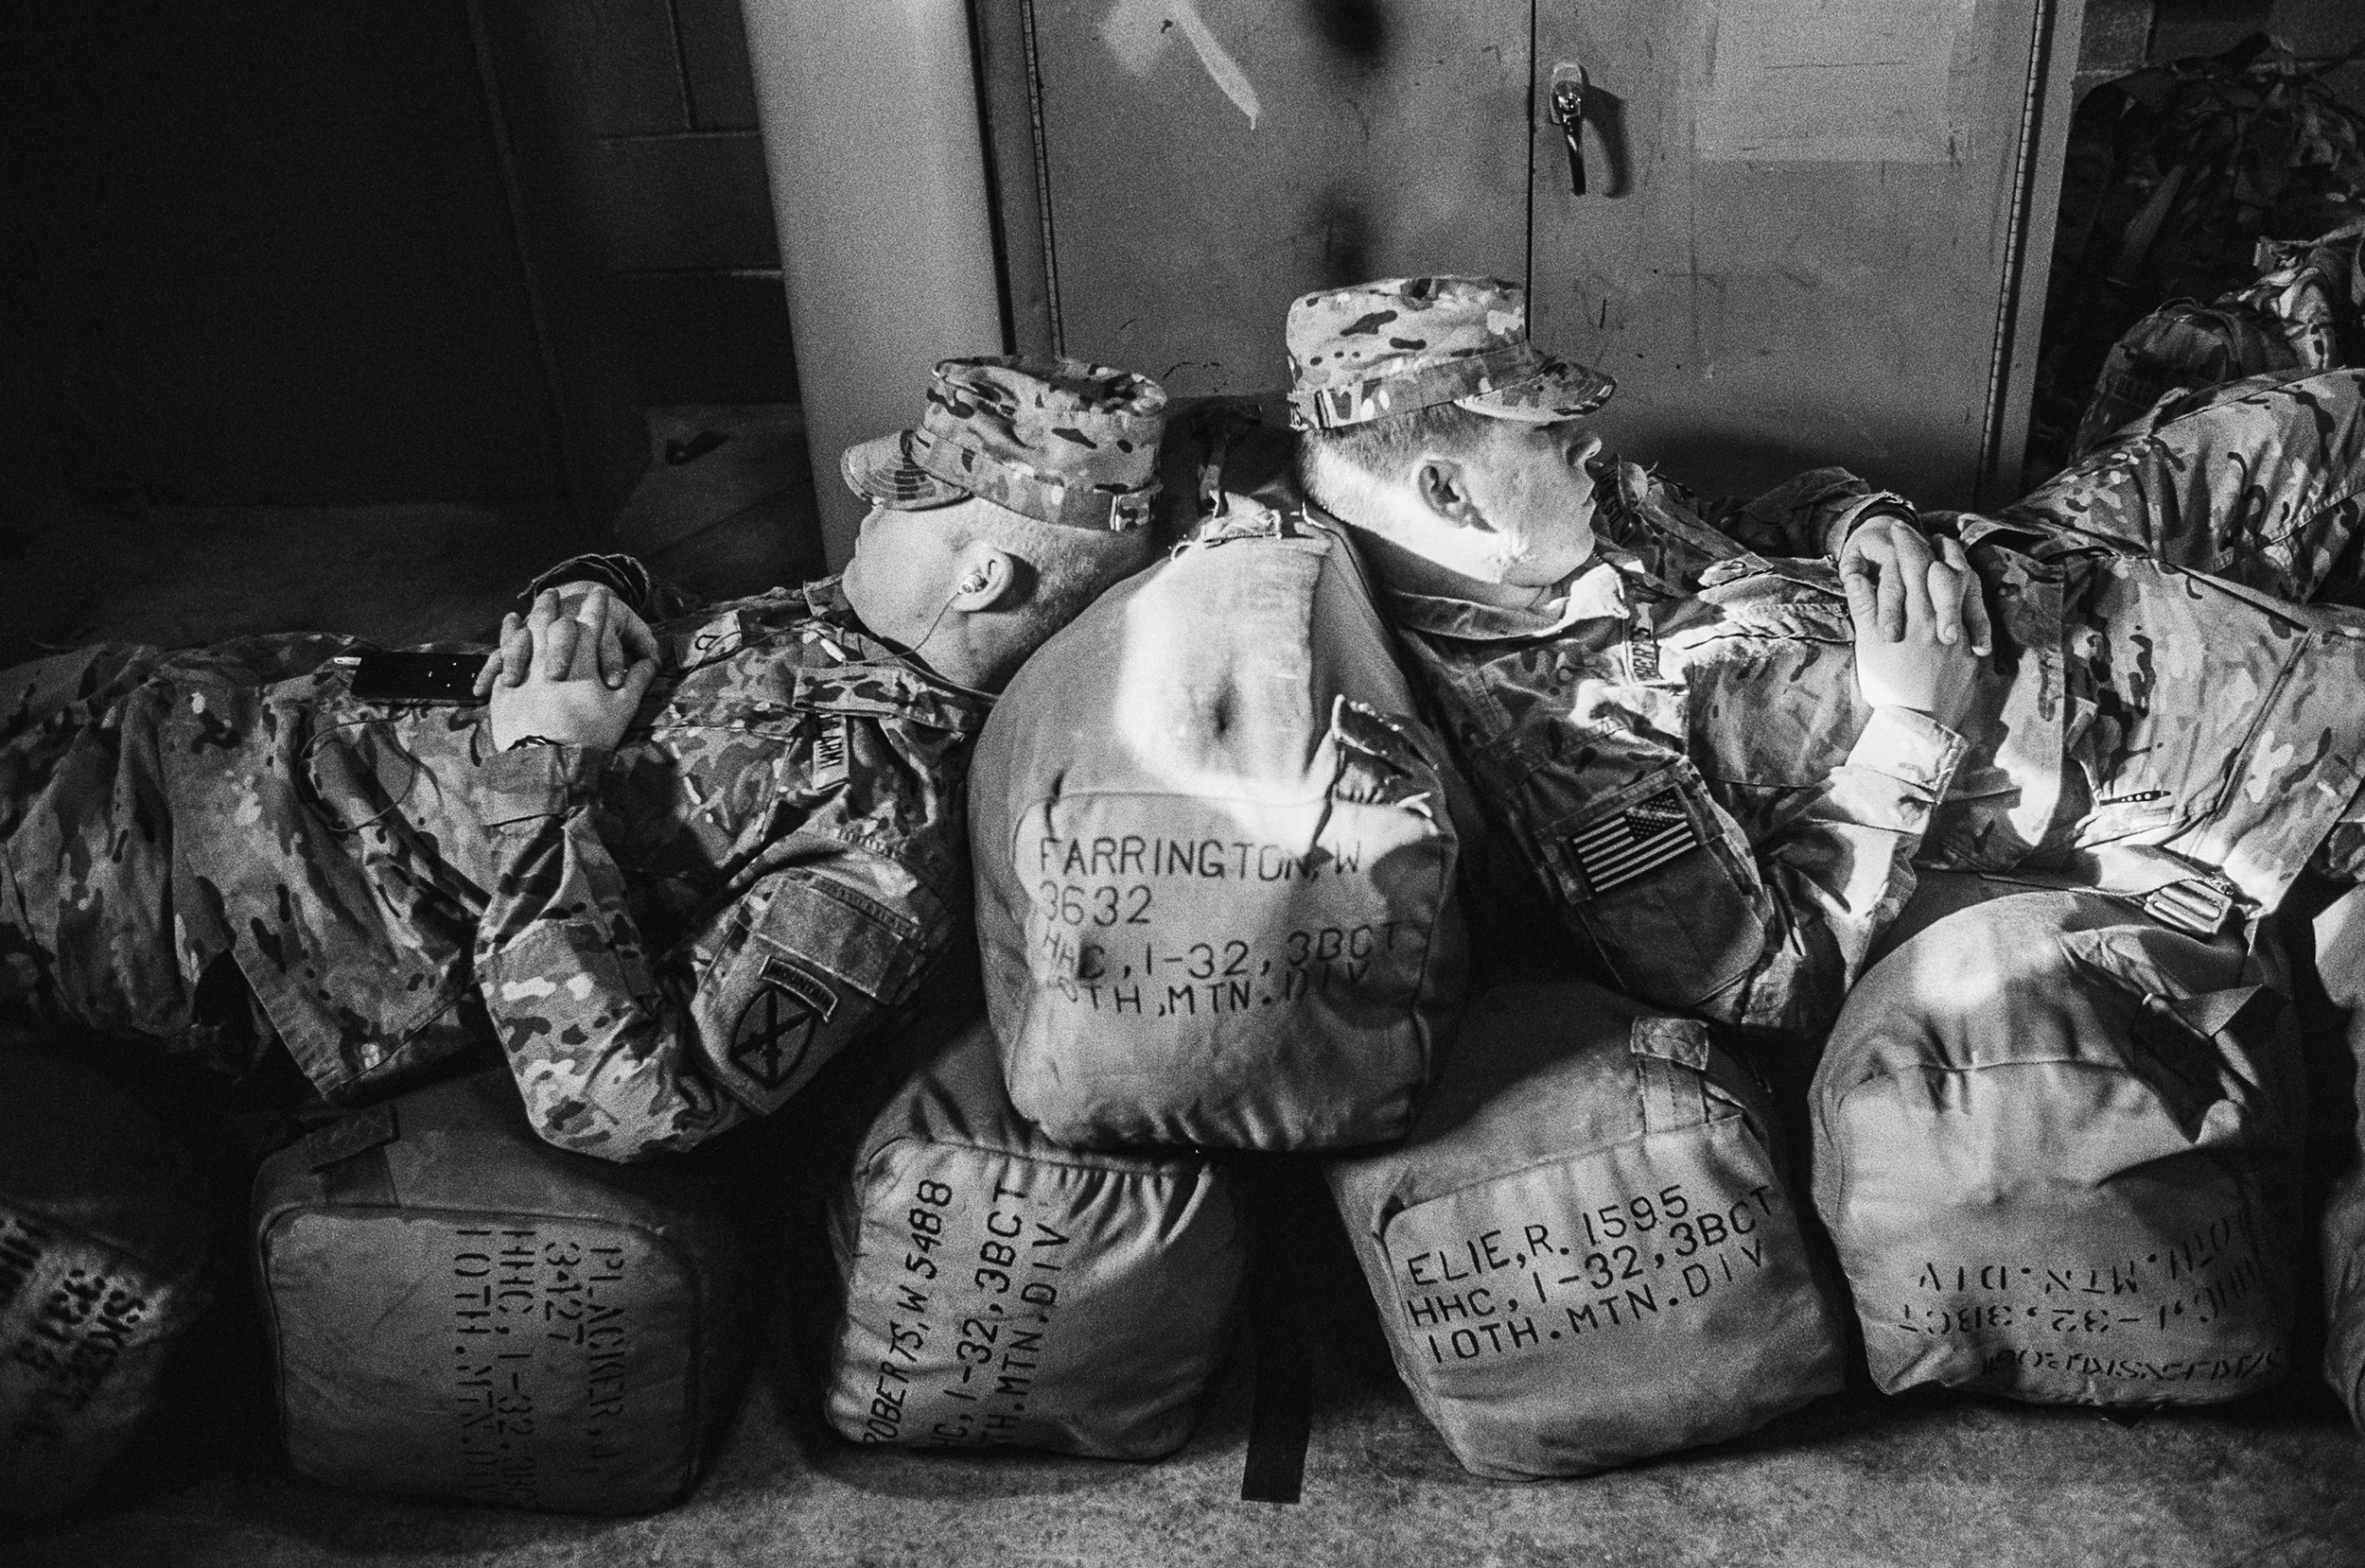 Two soldiers naps on their duffle bags before deploying to Afghanistan at Fort Drum, New York, 2011.